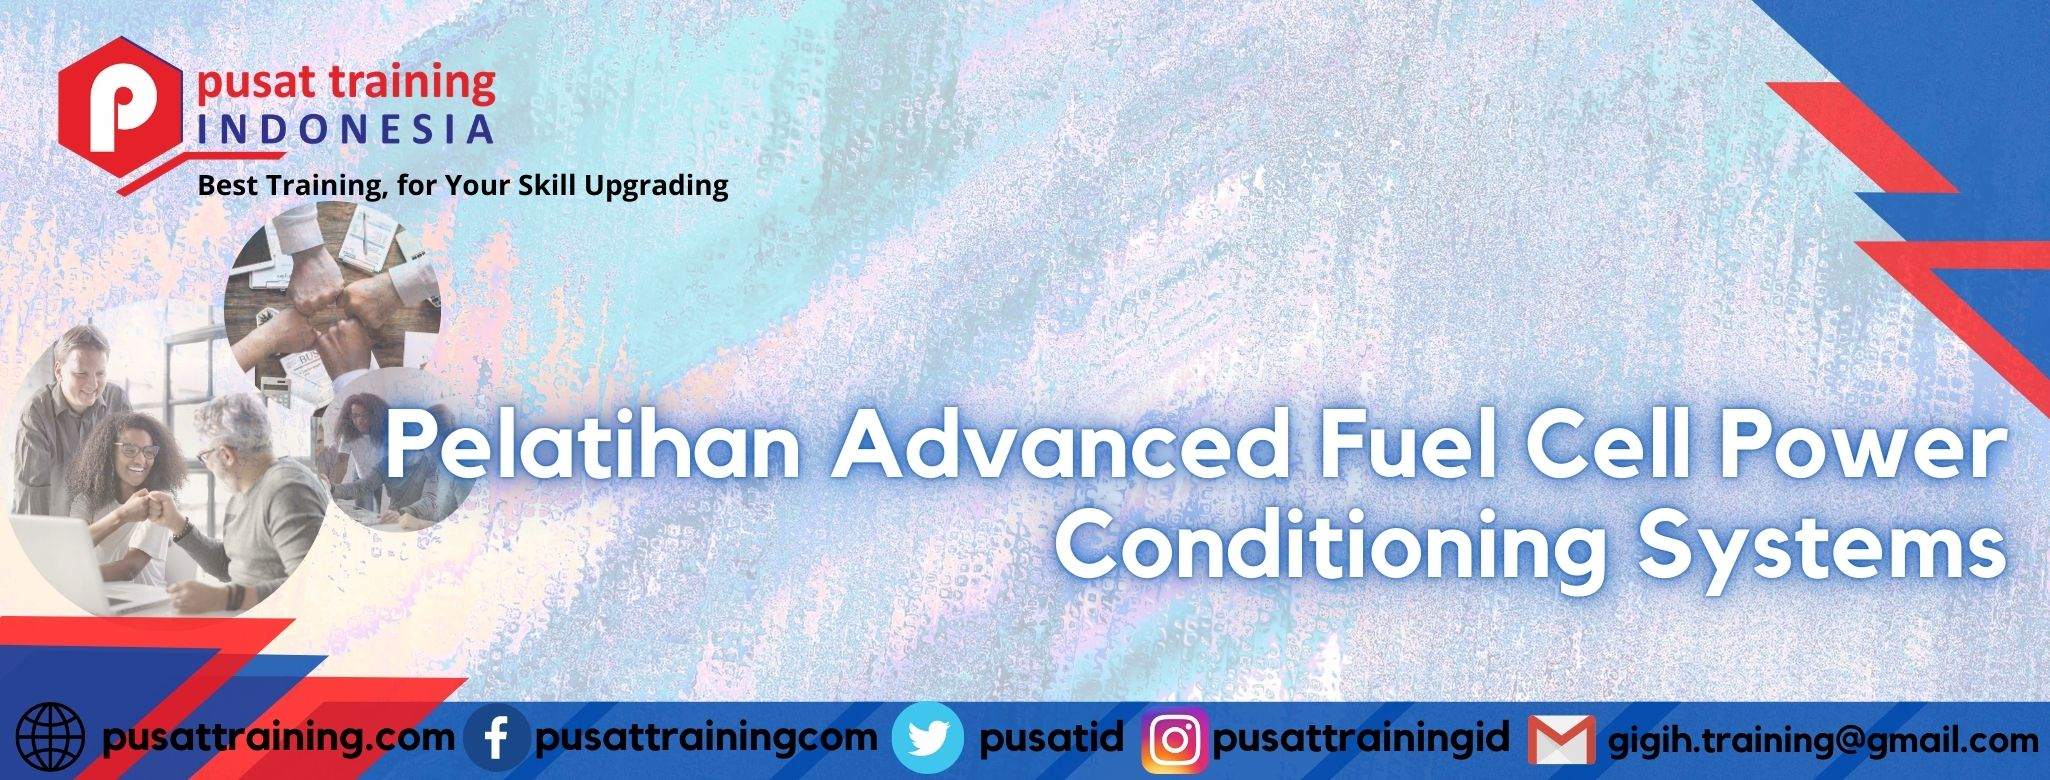 Pelatihan-Advanced-Fuel-Cell-Power-Conditioning-Systems